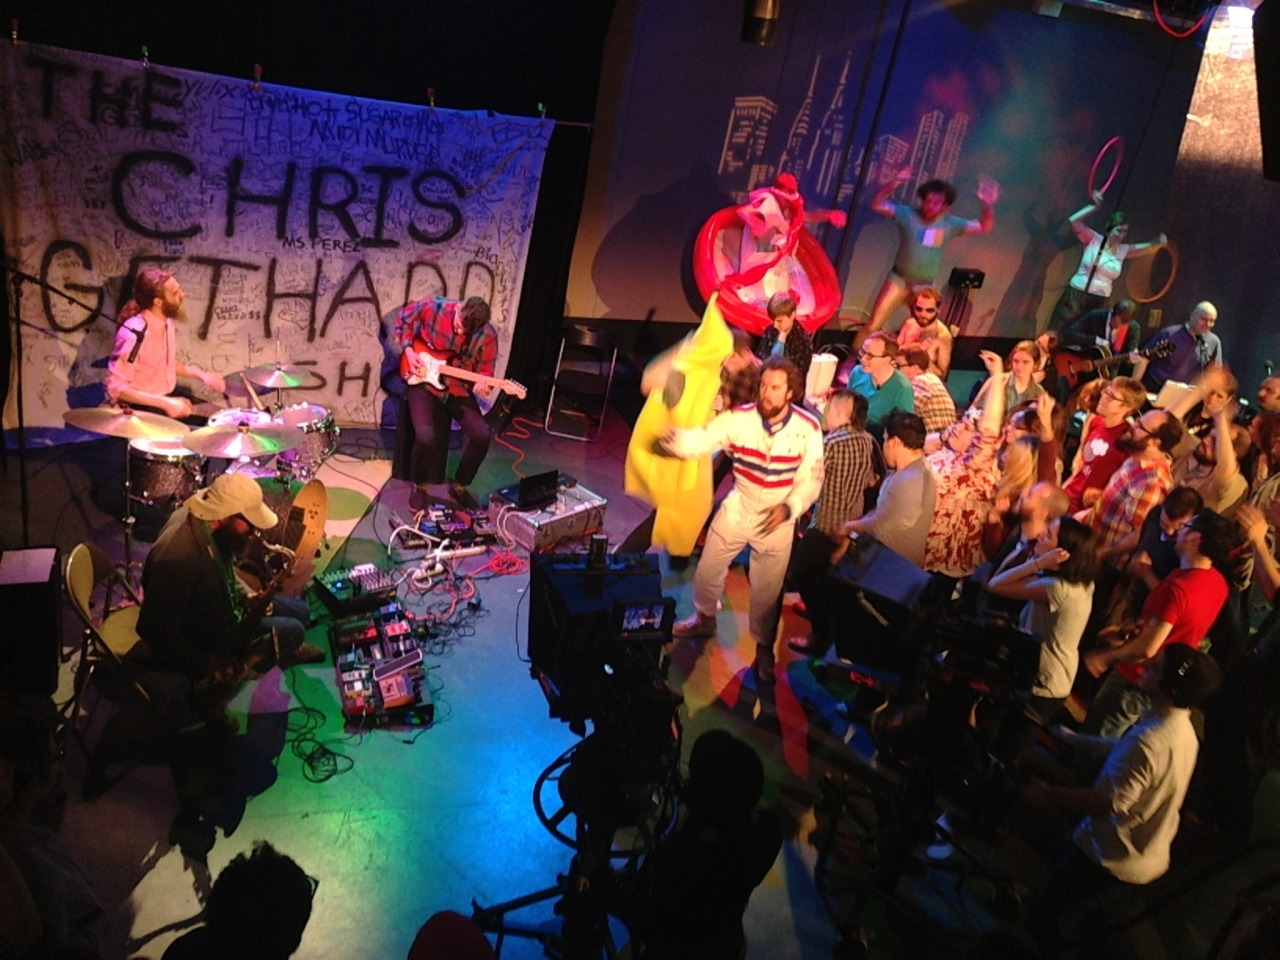 Zs played two 5 minute pieces on The Chris Gethard Show last night. Amy Poehler danced in the audience along with a man dressed as a banana. I'm a fan of the show now. It's hilarious and the vibes are fantastic. Watch it on Wednesday nights or check the shows out on youtube. I'll share the ZS performances once they're up. Blake Brysha snapped this photo. — with Greg Fox, Diamond Terrifier, ZS, Patrick Higgins,Human Wishing Well and Chris Gethard at Manhattan Neighborhood Network.